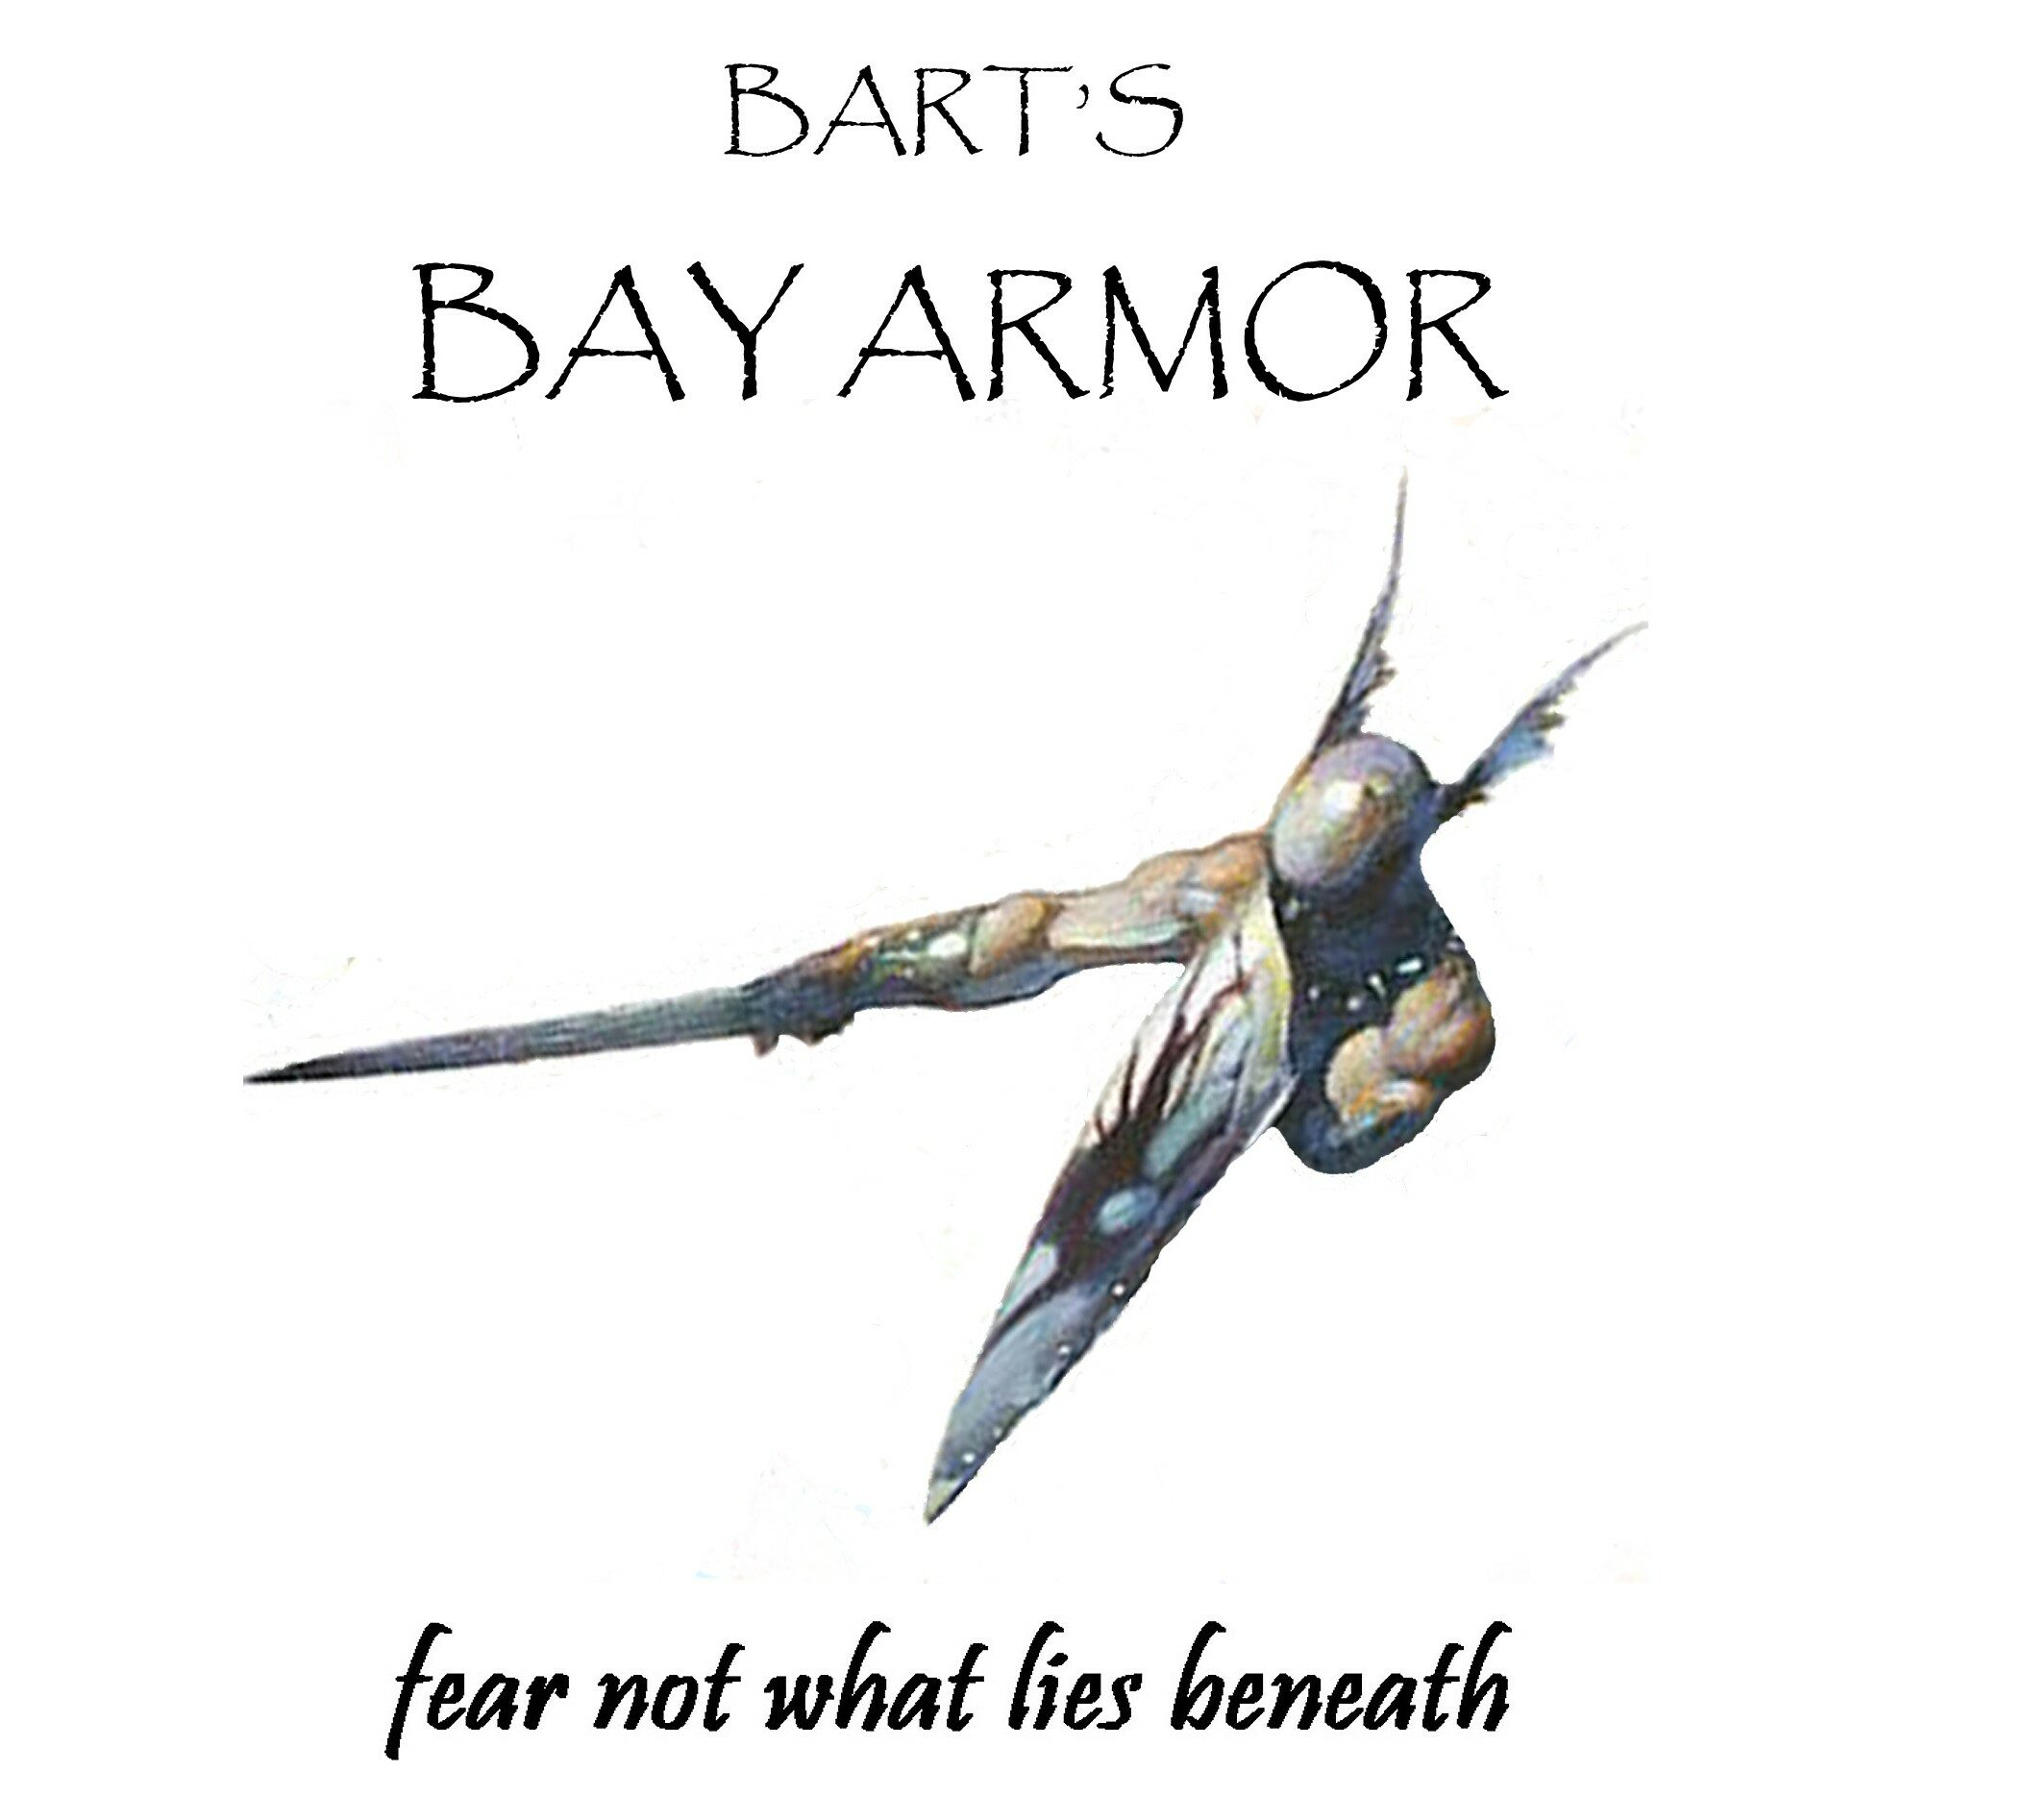 Bart's Bay Armor™